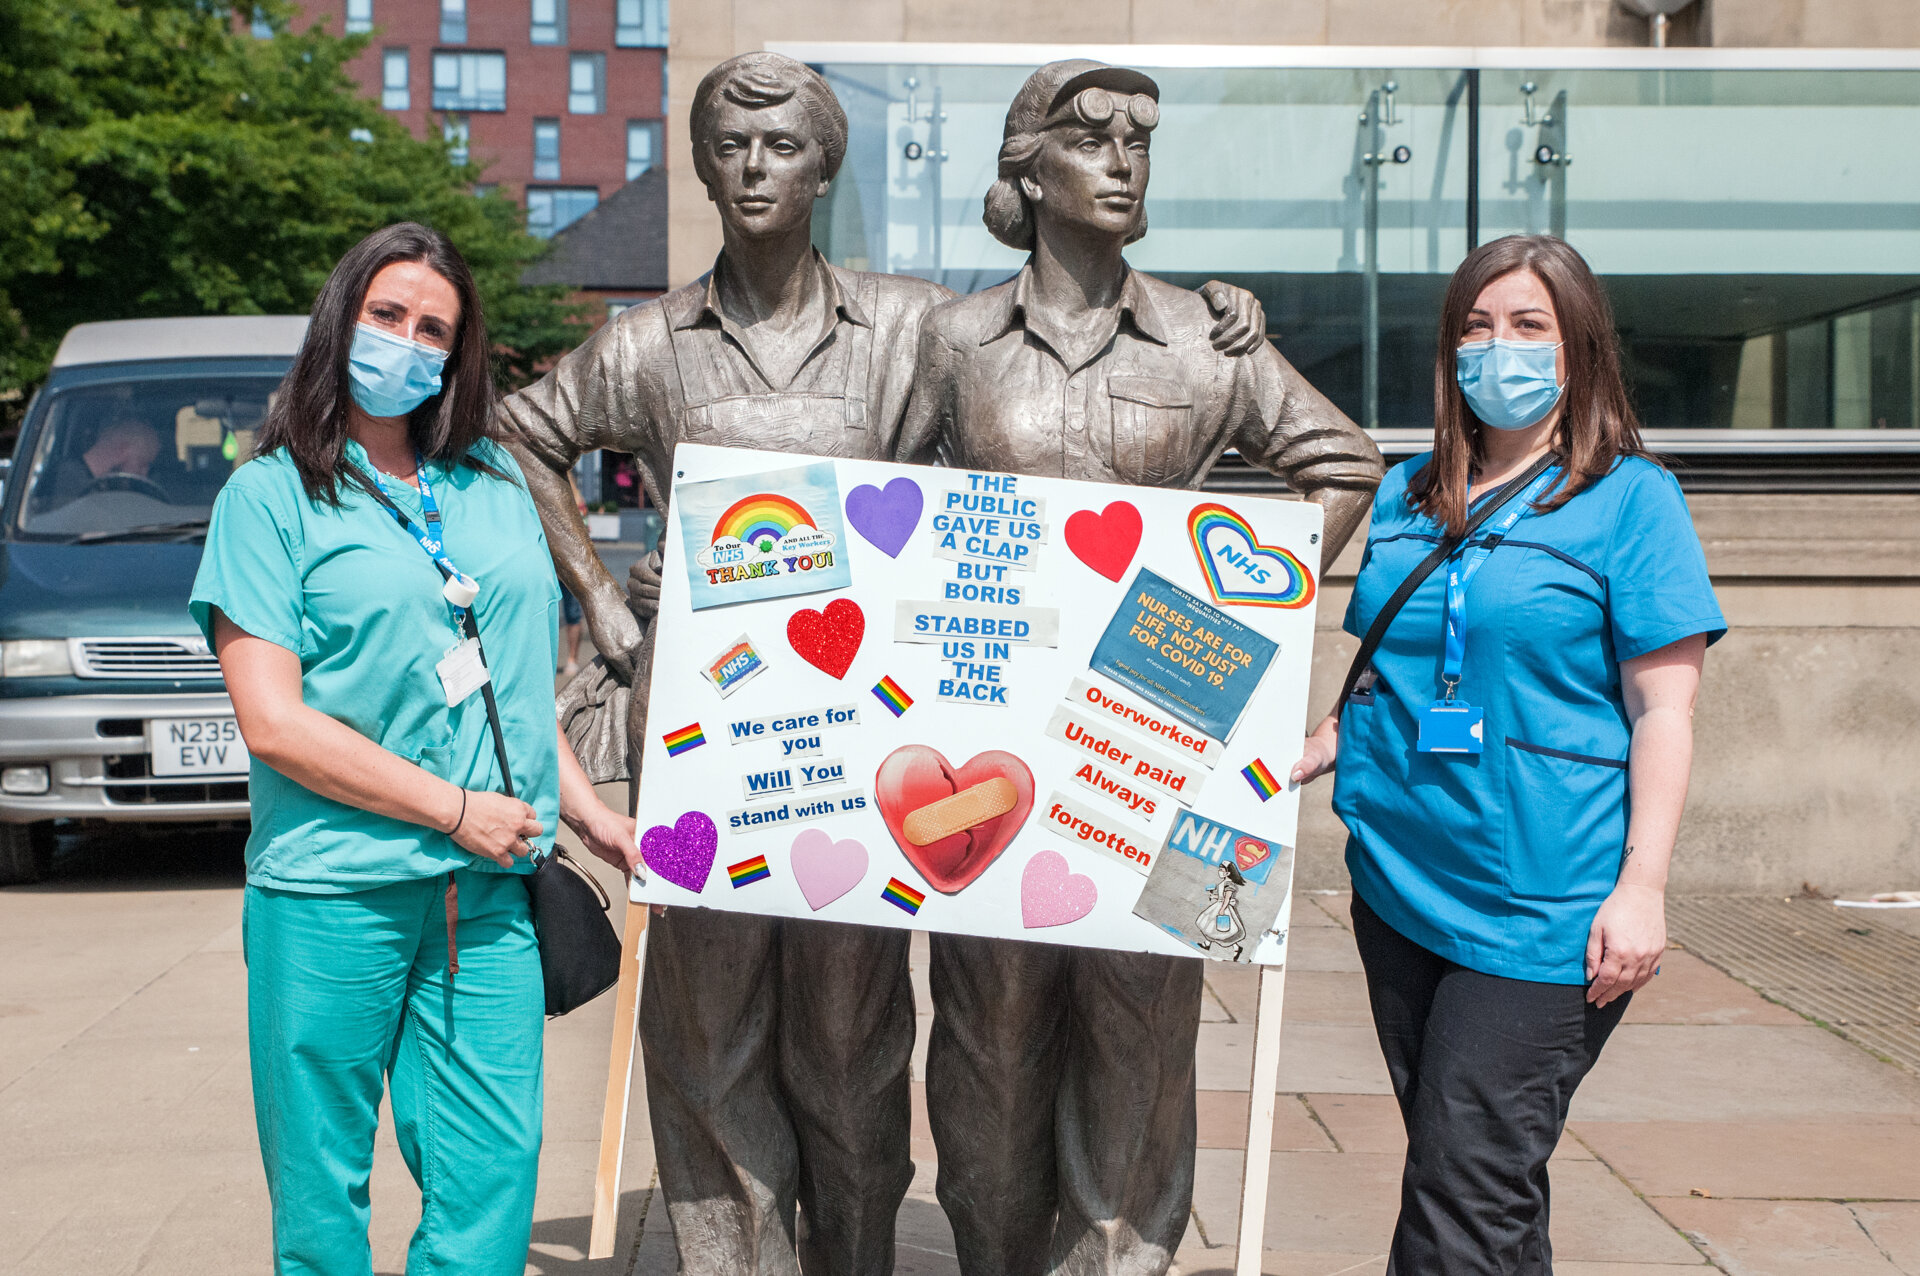 A socially distanced protest asking for NHS nurses to get a 15 pay rise